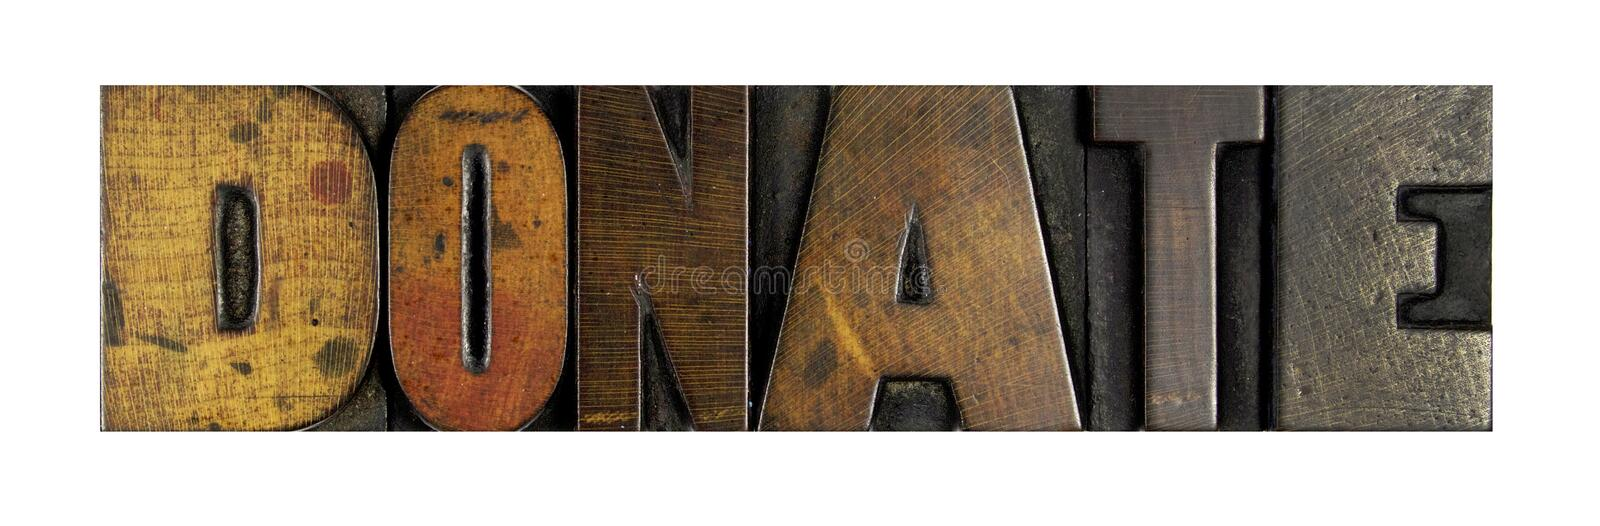 Donate. The word DONATE written in vintage letterpress type stock images